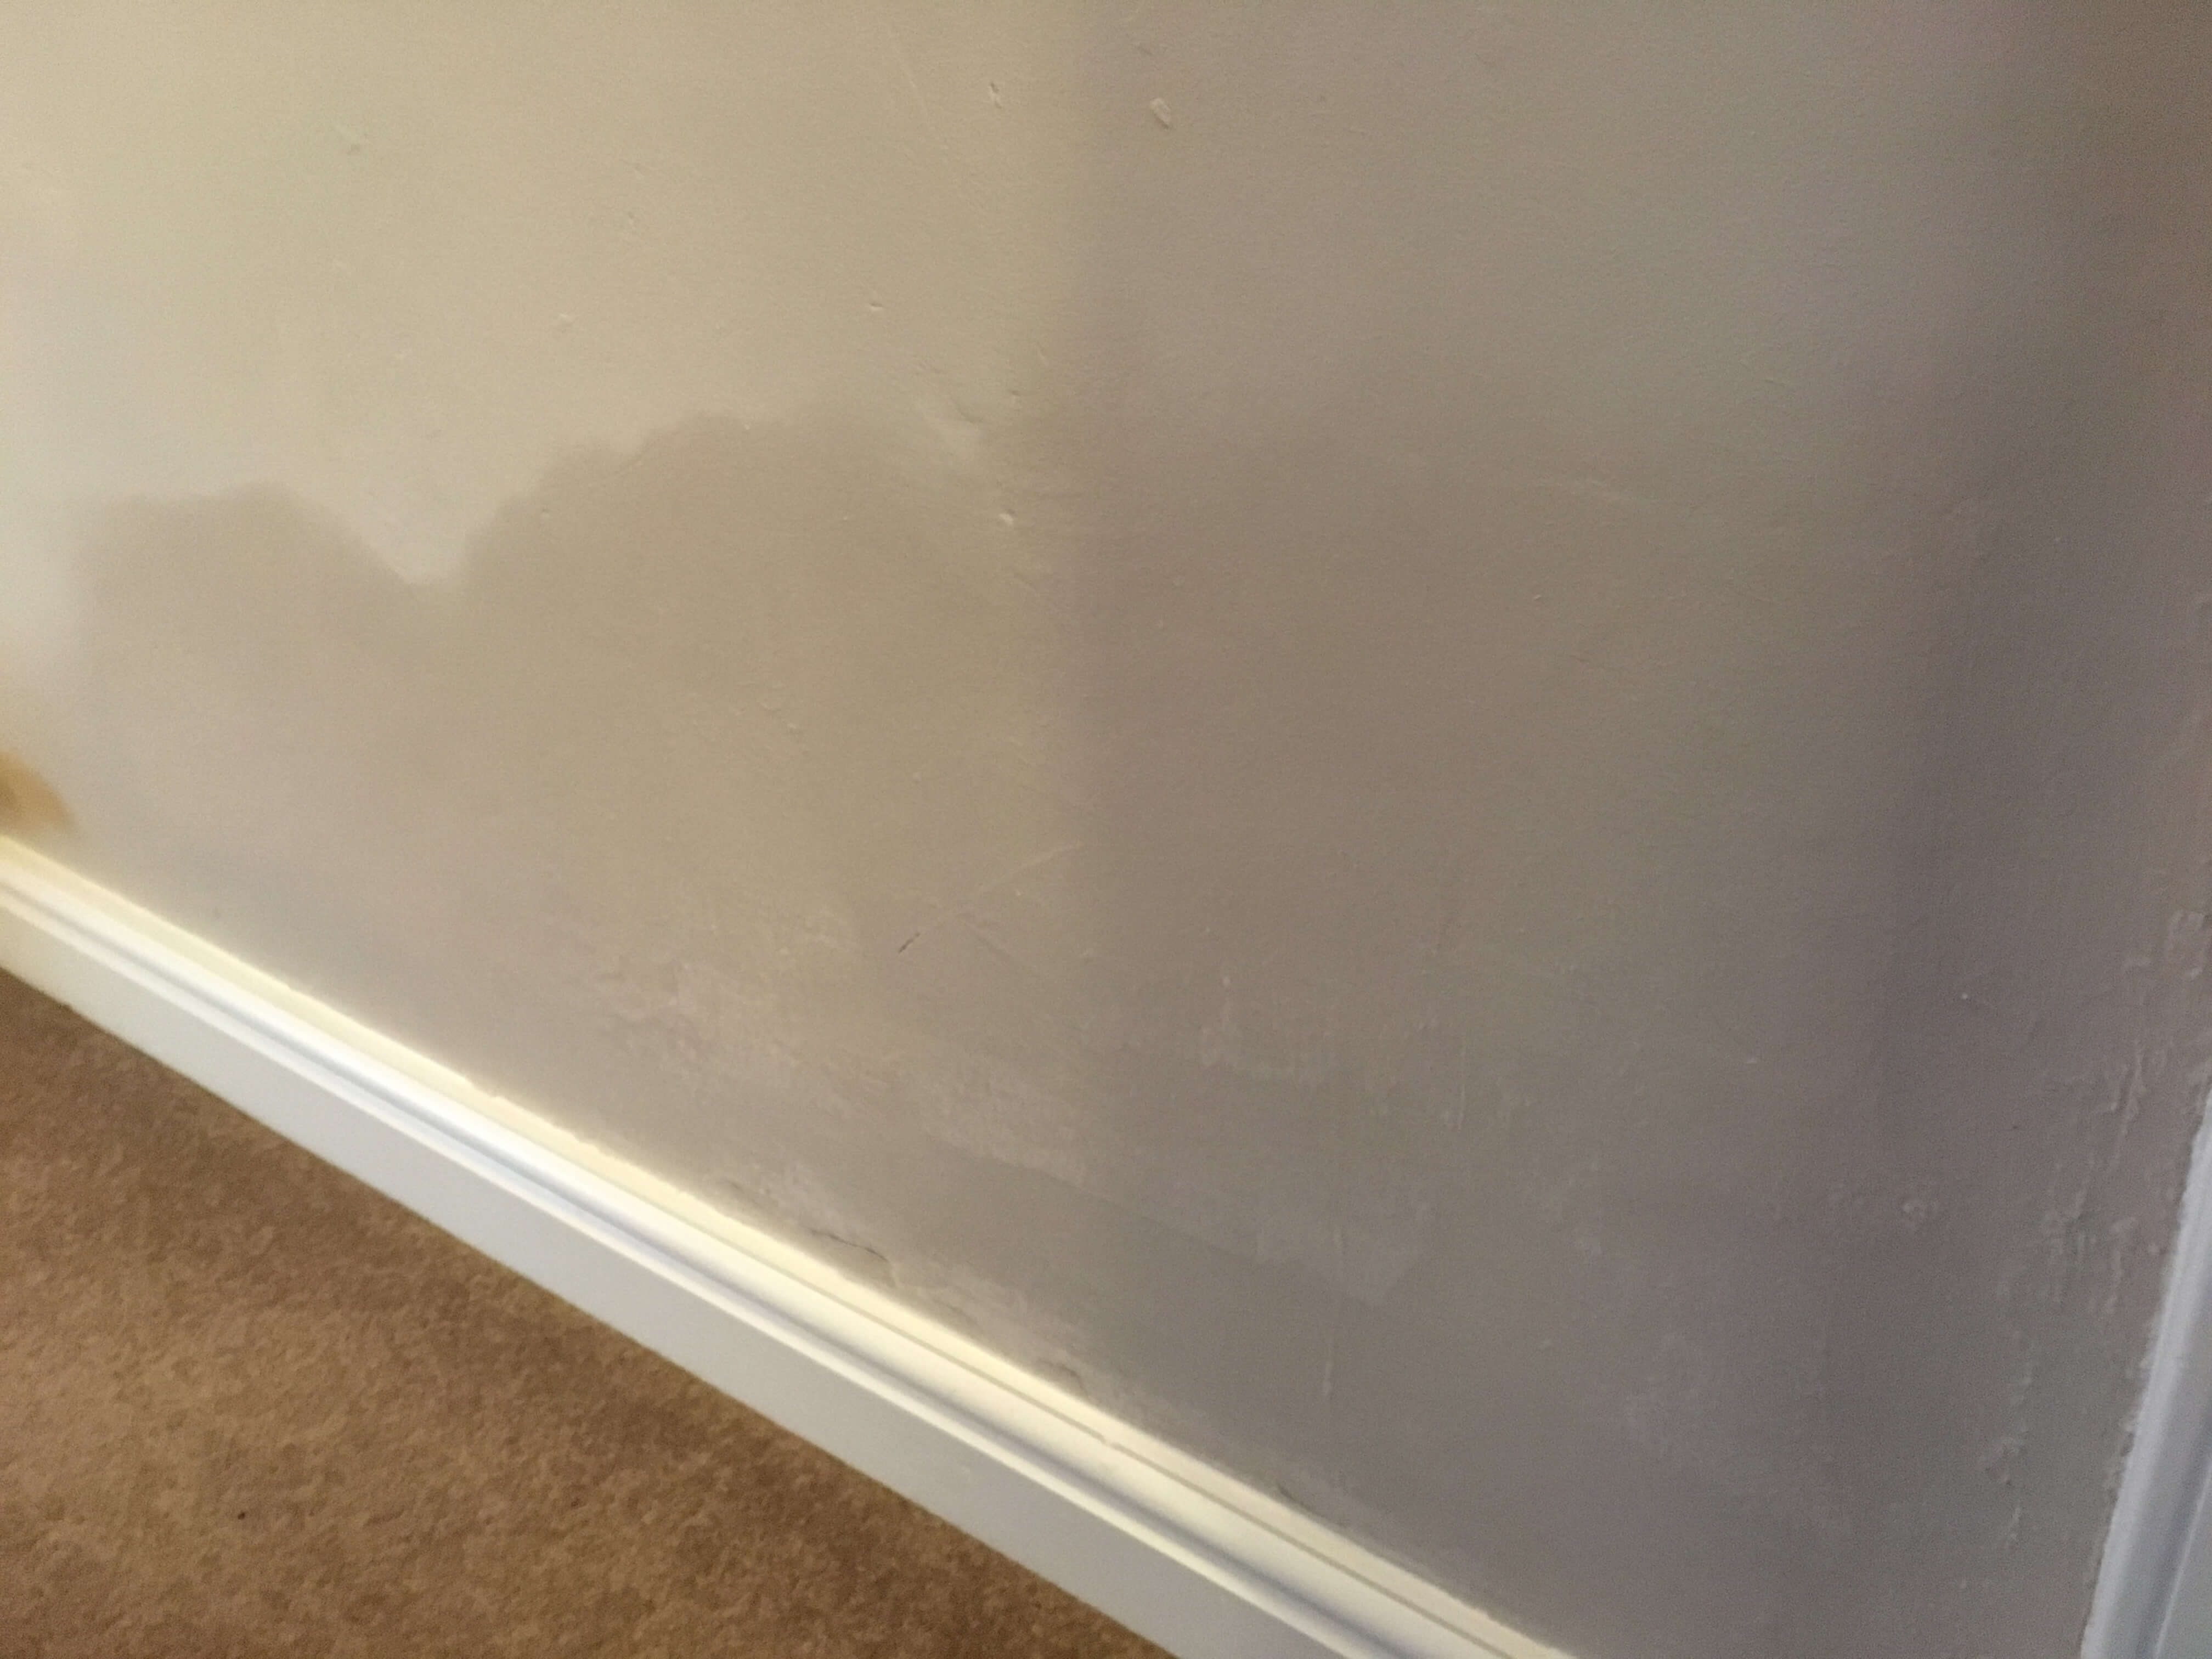 Rising Damp in wall in Winsford, Cheshire